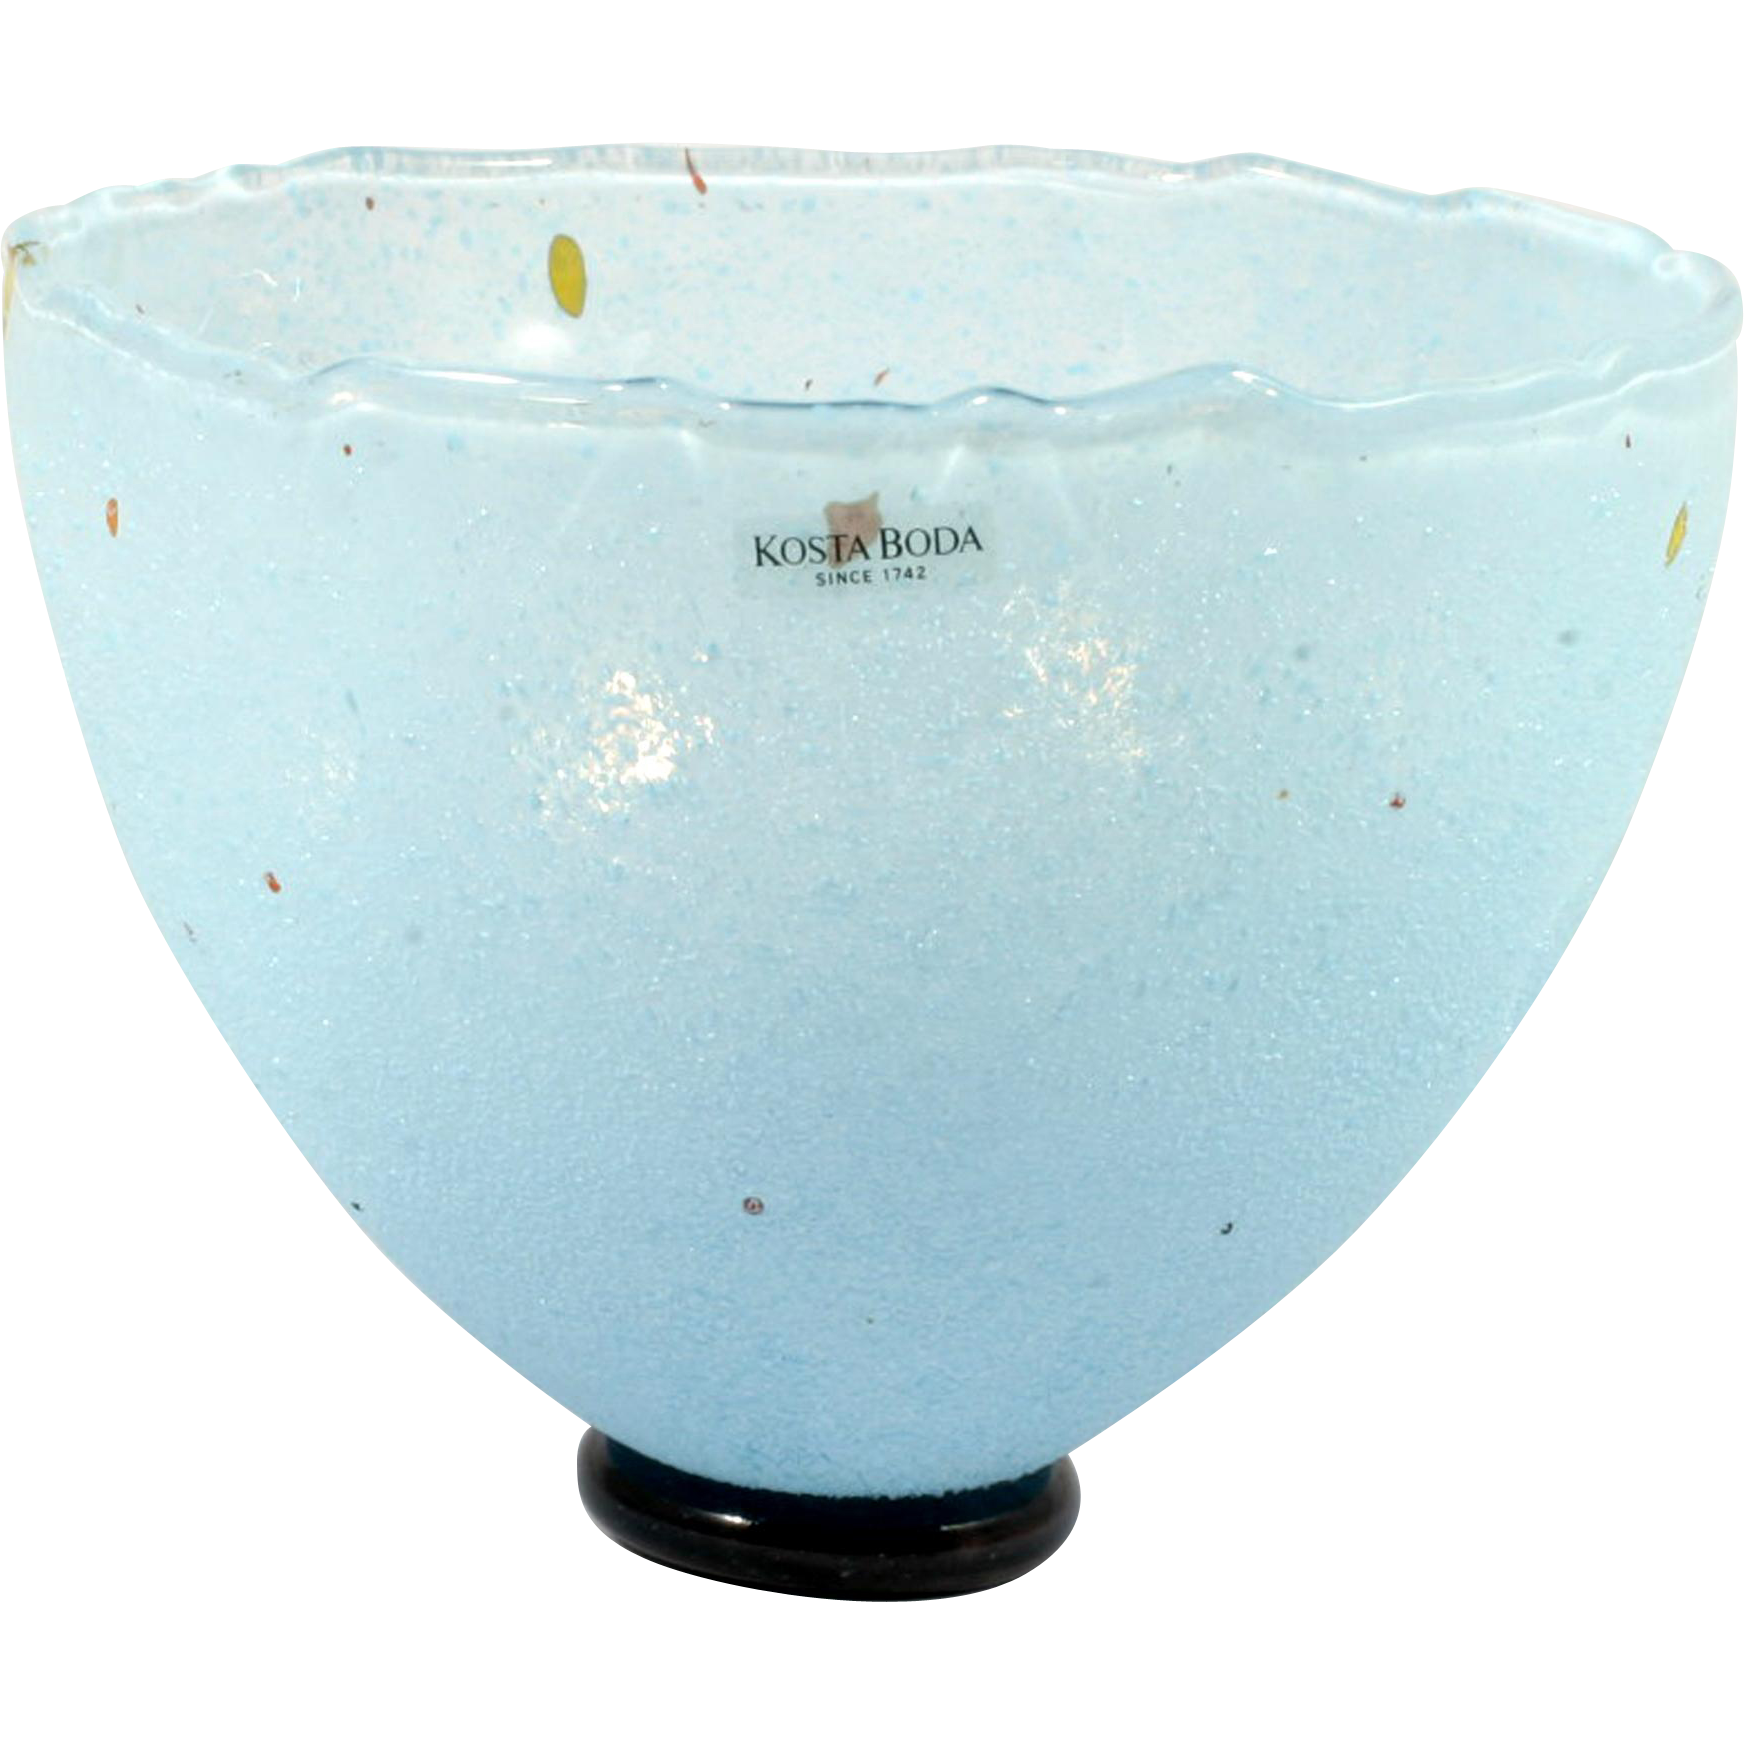 Kosta Boda Blue Glass Bowl B Vallien Art Collection 59608 Swedish